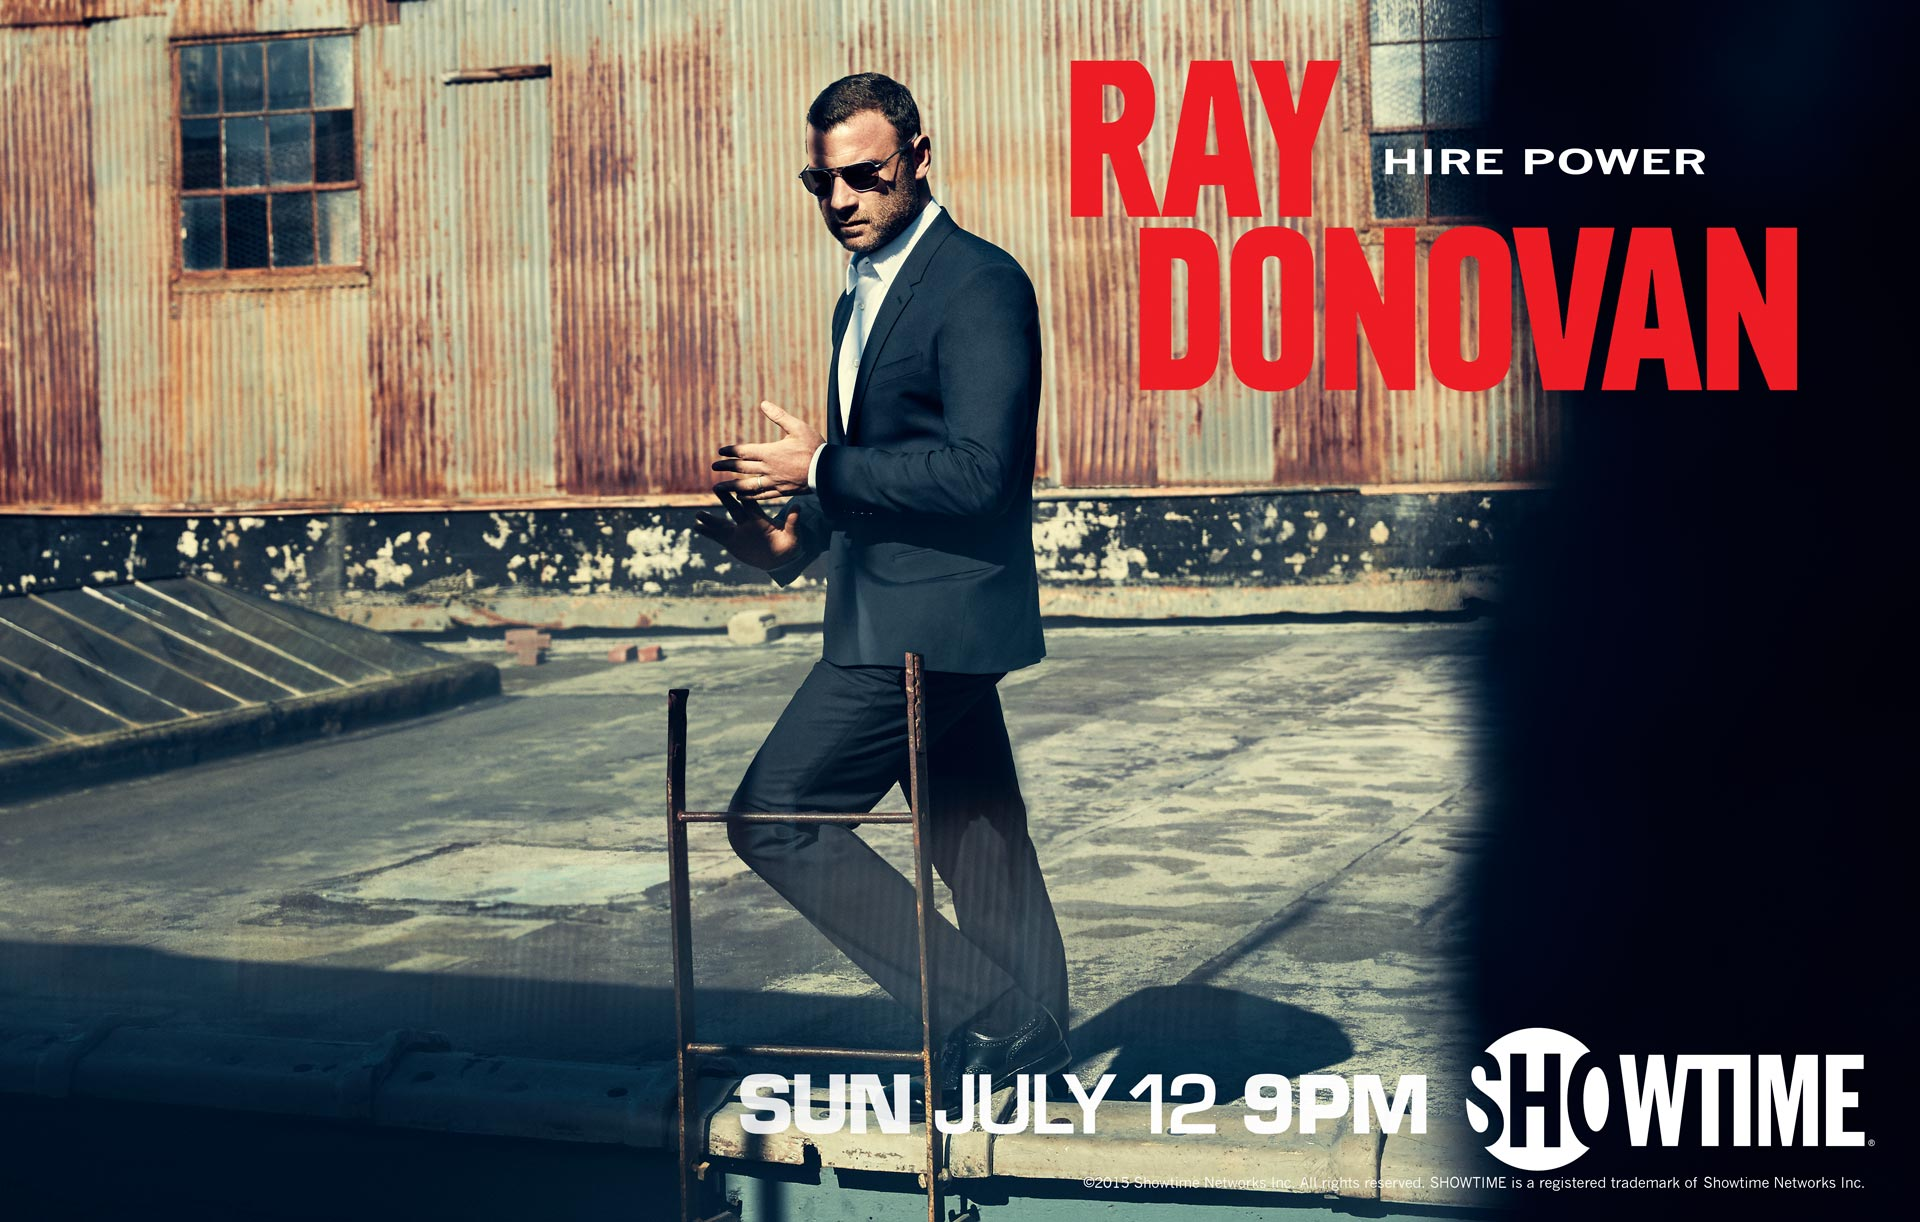 20150305_STEVENLIPPMAN_SHOWTIME_RAY_DONOVAN_03